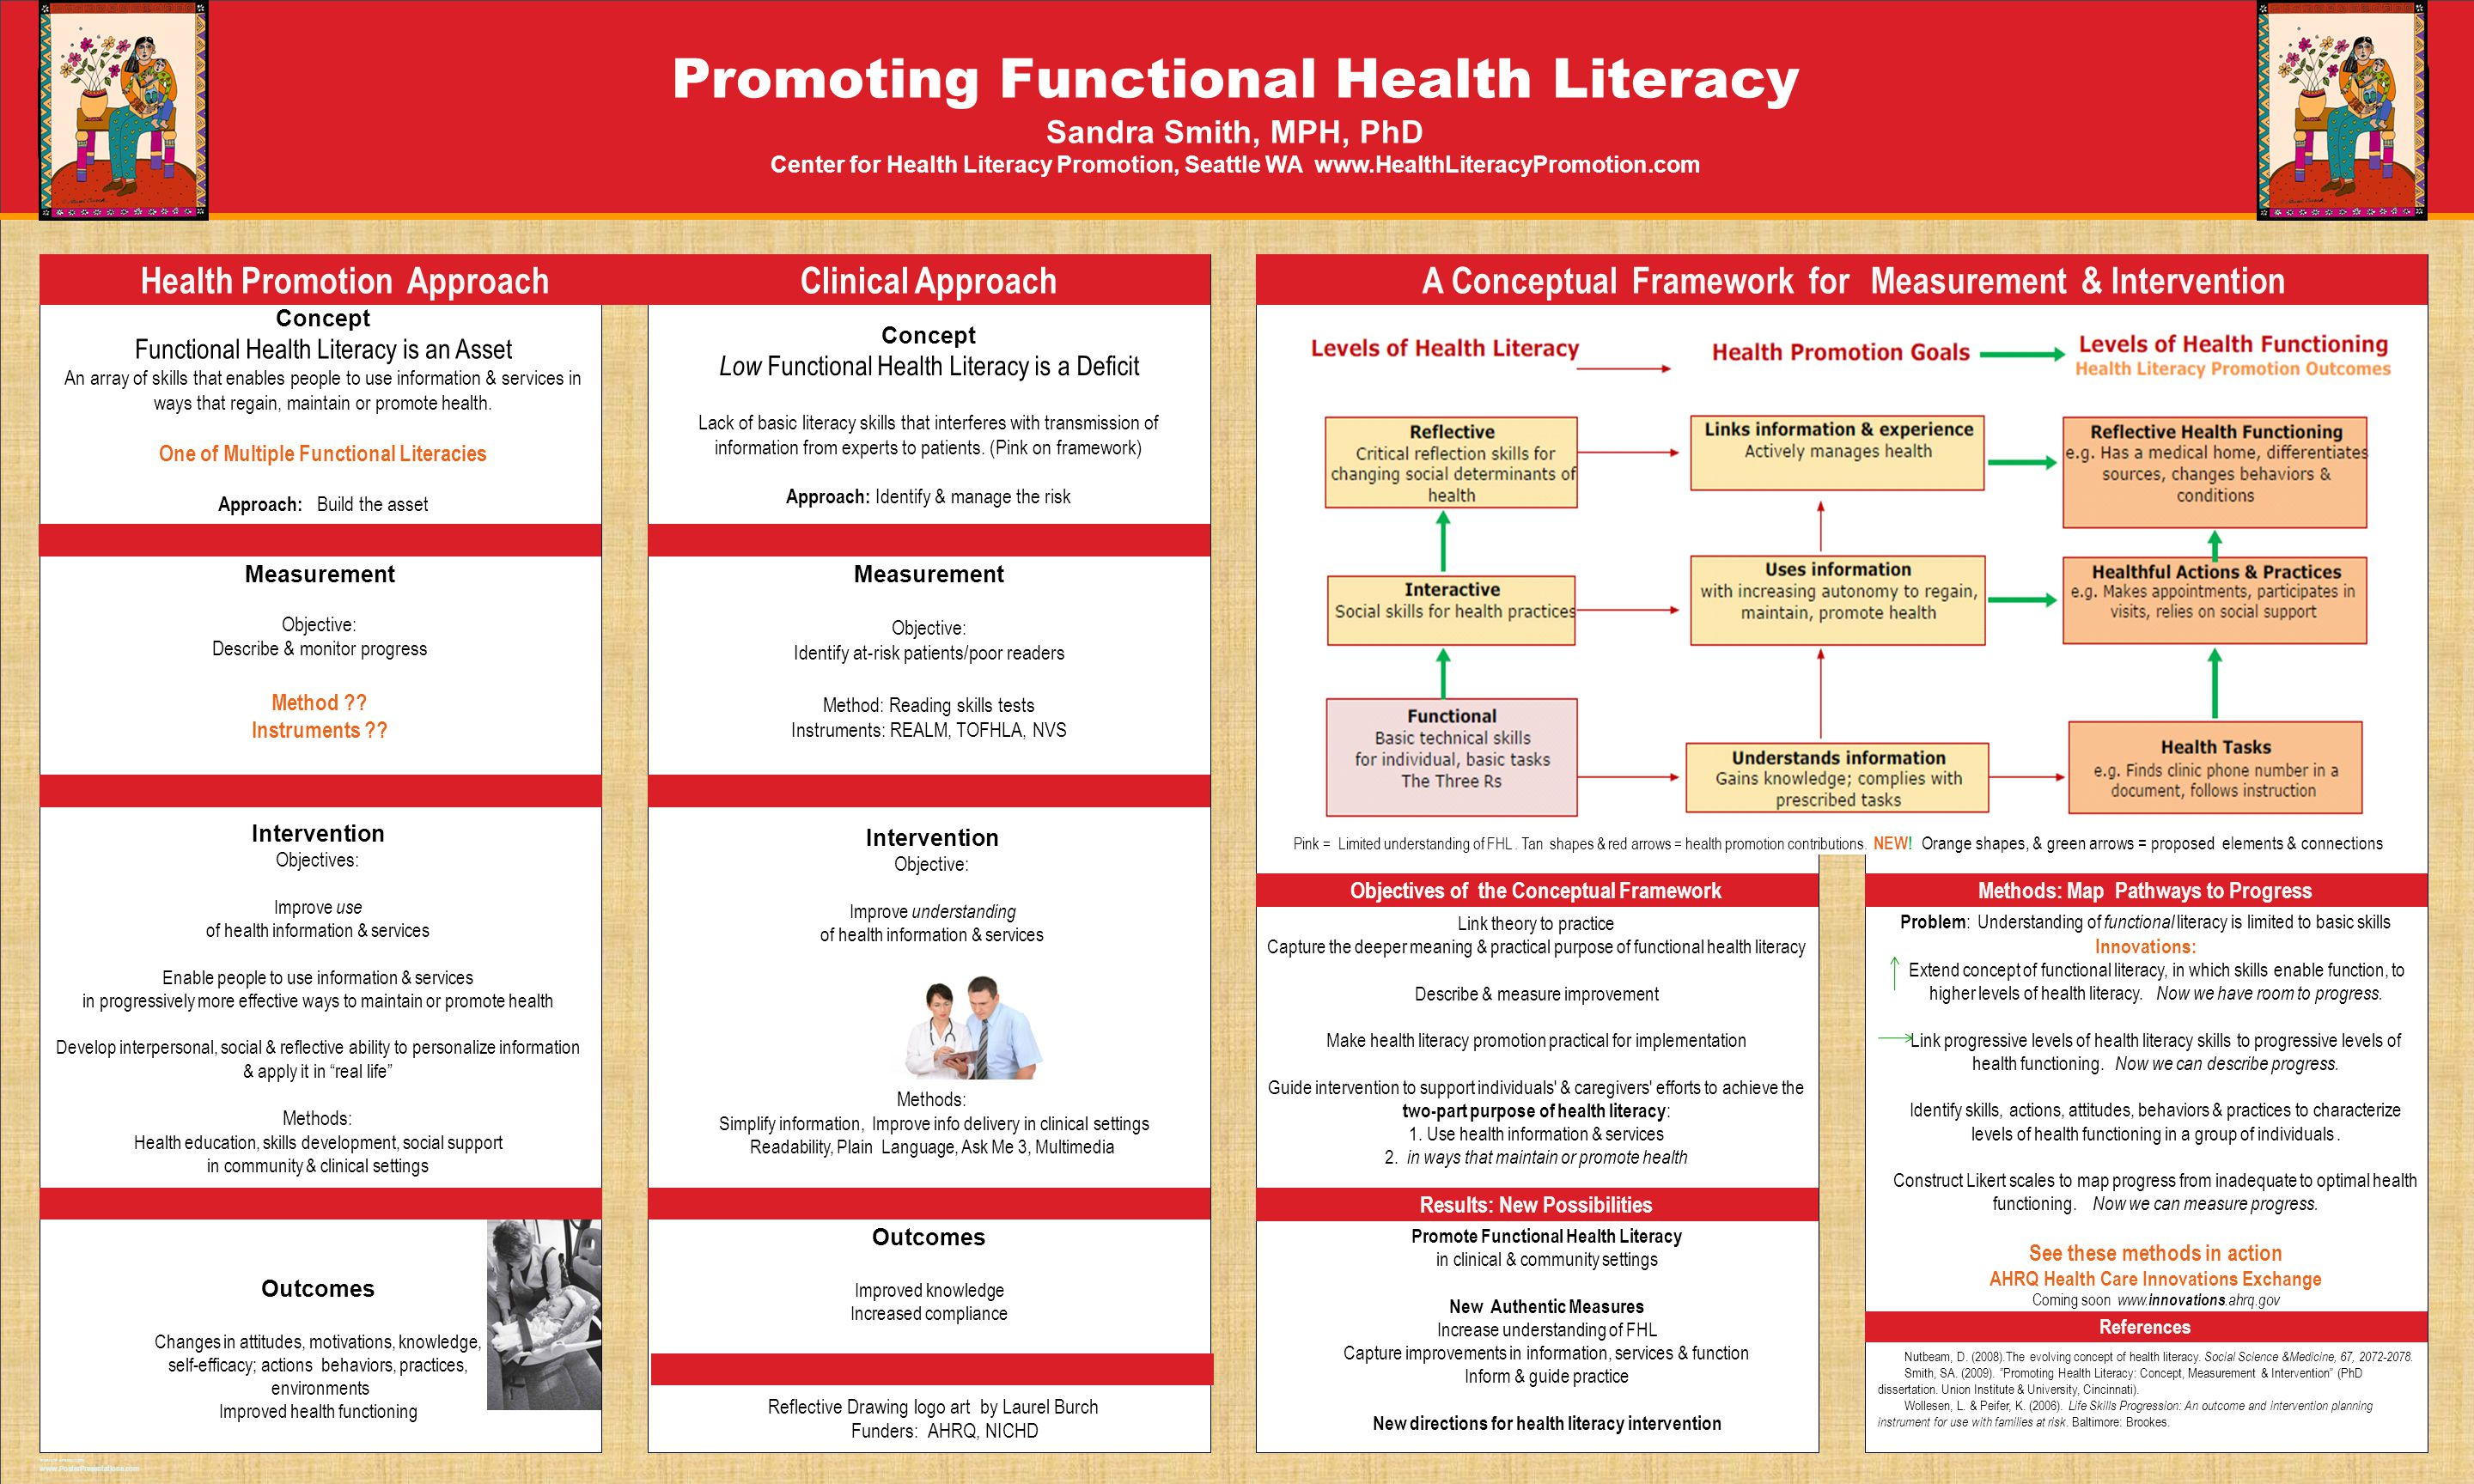 TEMPLATE DESIGN © 2008 www.PosterPresentations.com Promoting Functional Health Literacy Sandra Smith, MPH, PhD Center for Health Literacy Promotion, S